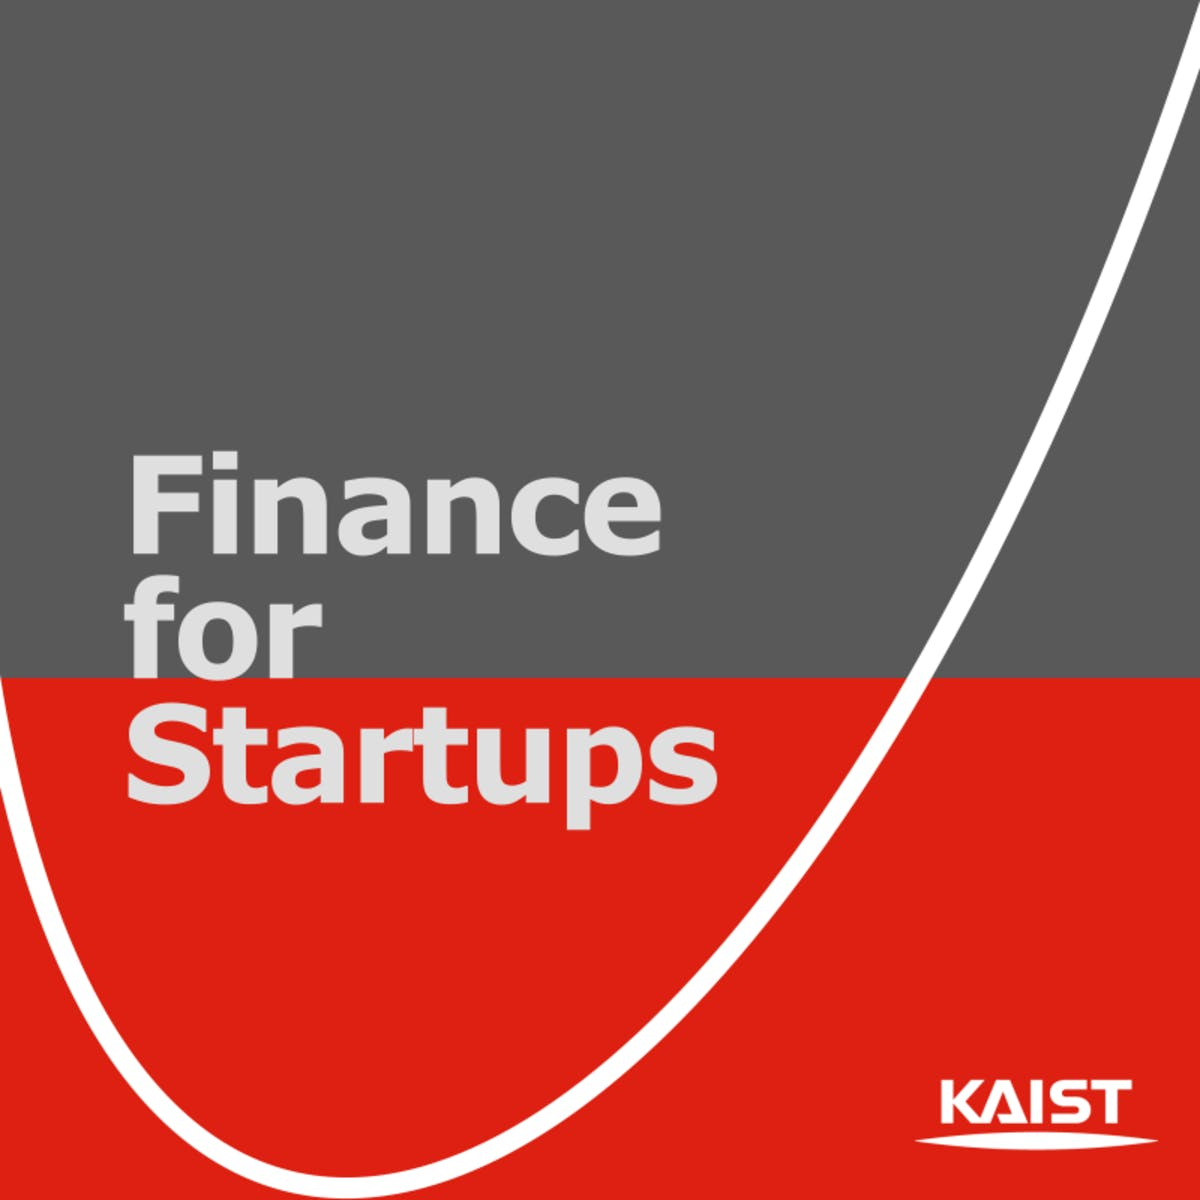 Finance for Startups